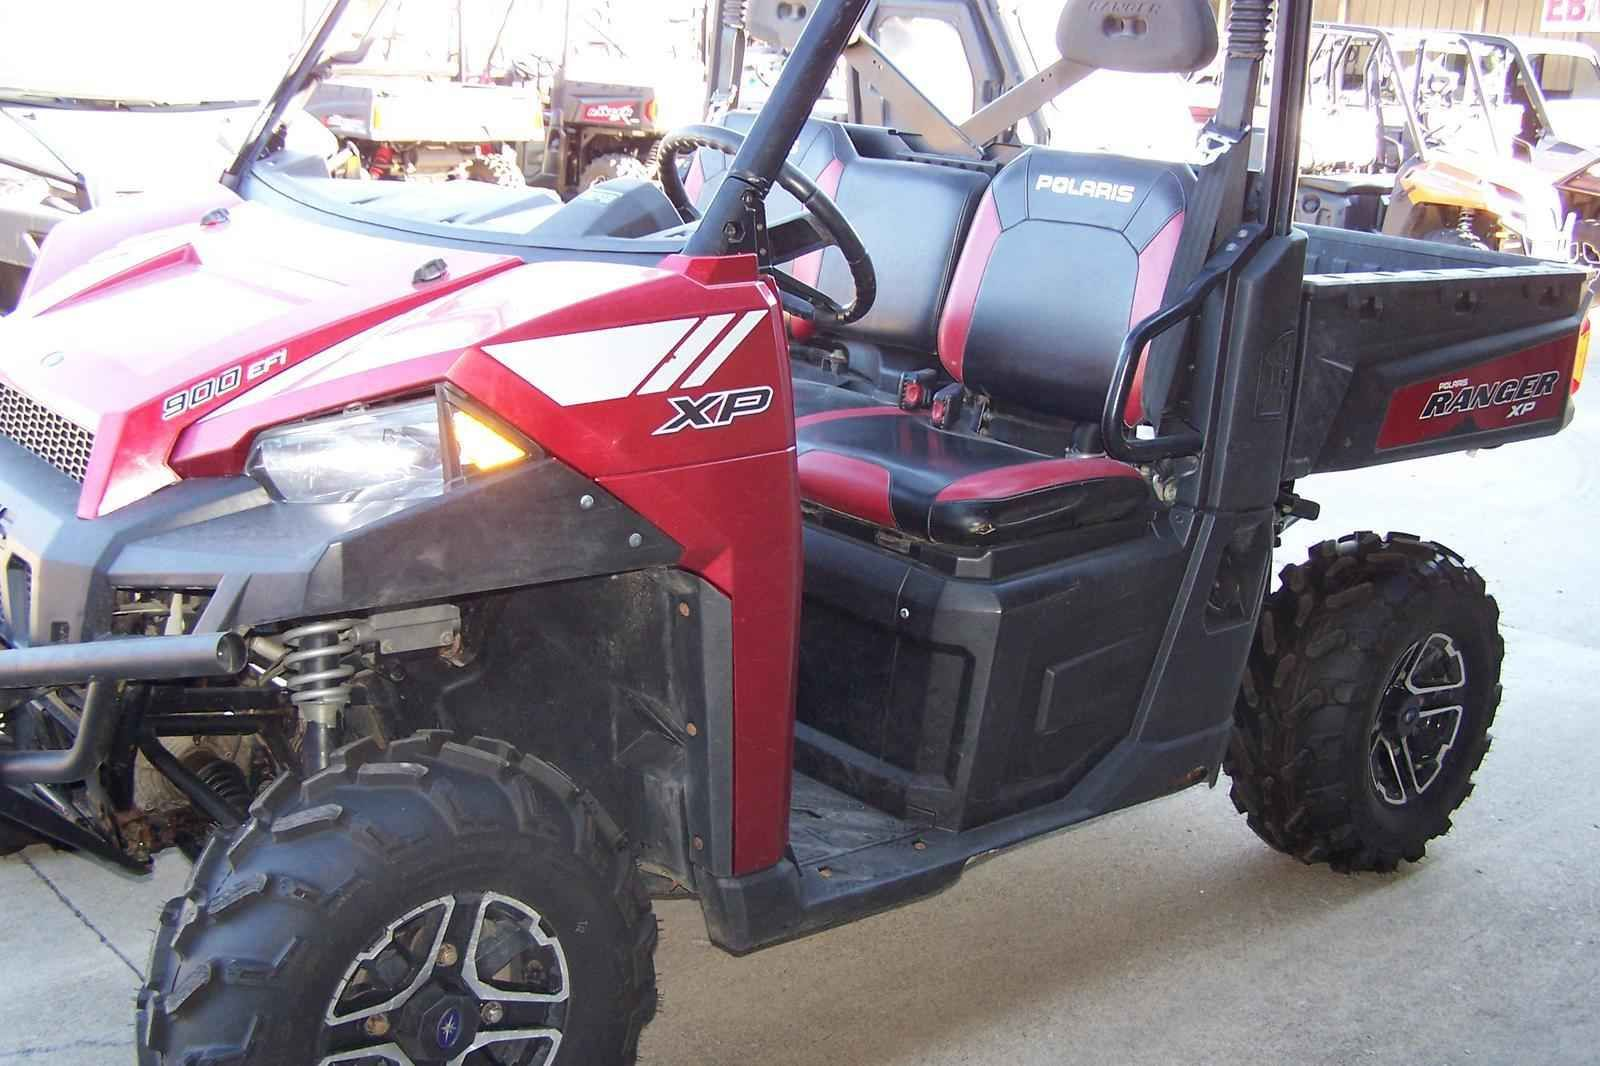 Used 2013 Polaris RANGER XP 900 EPS Su ATVs For Sale in Iowa. 2013 POLARIS